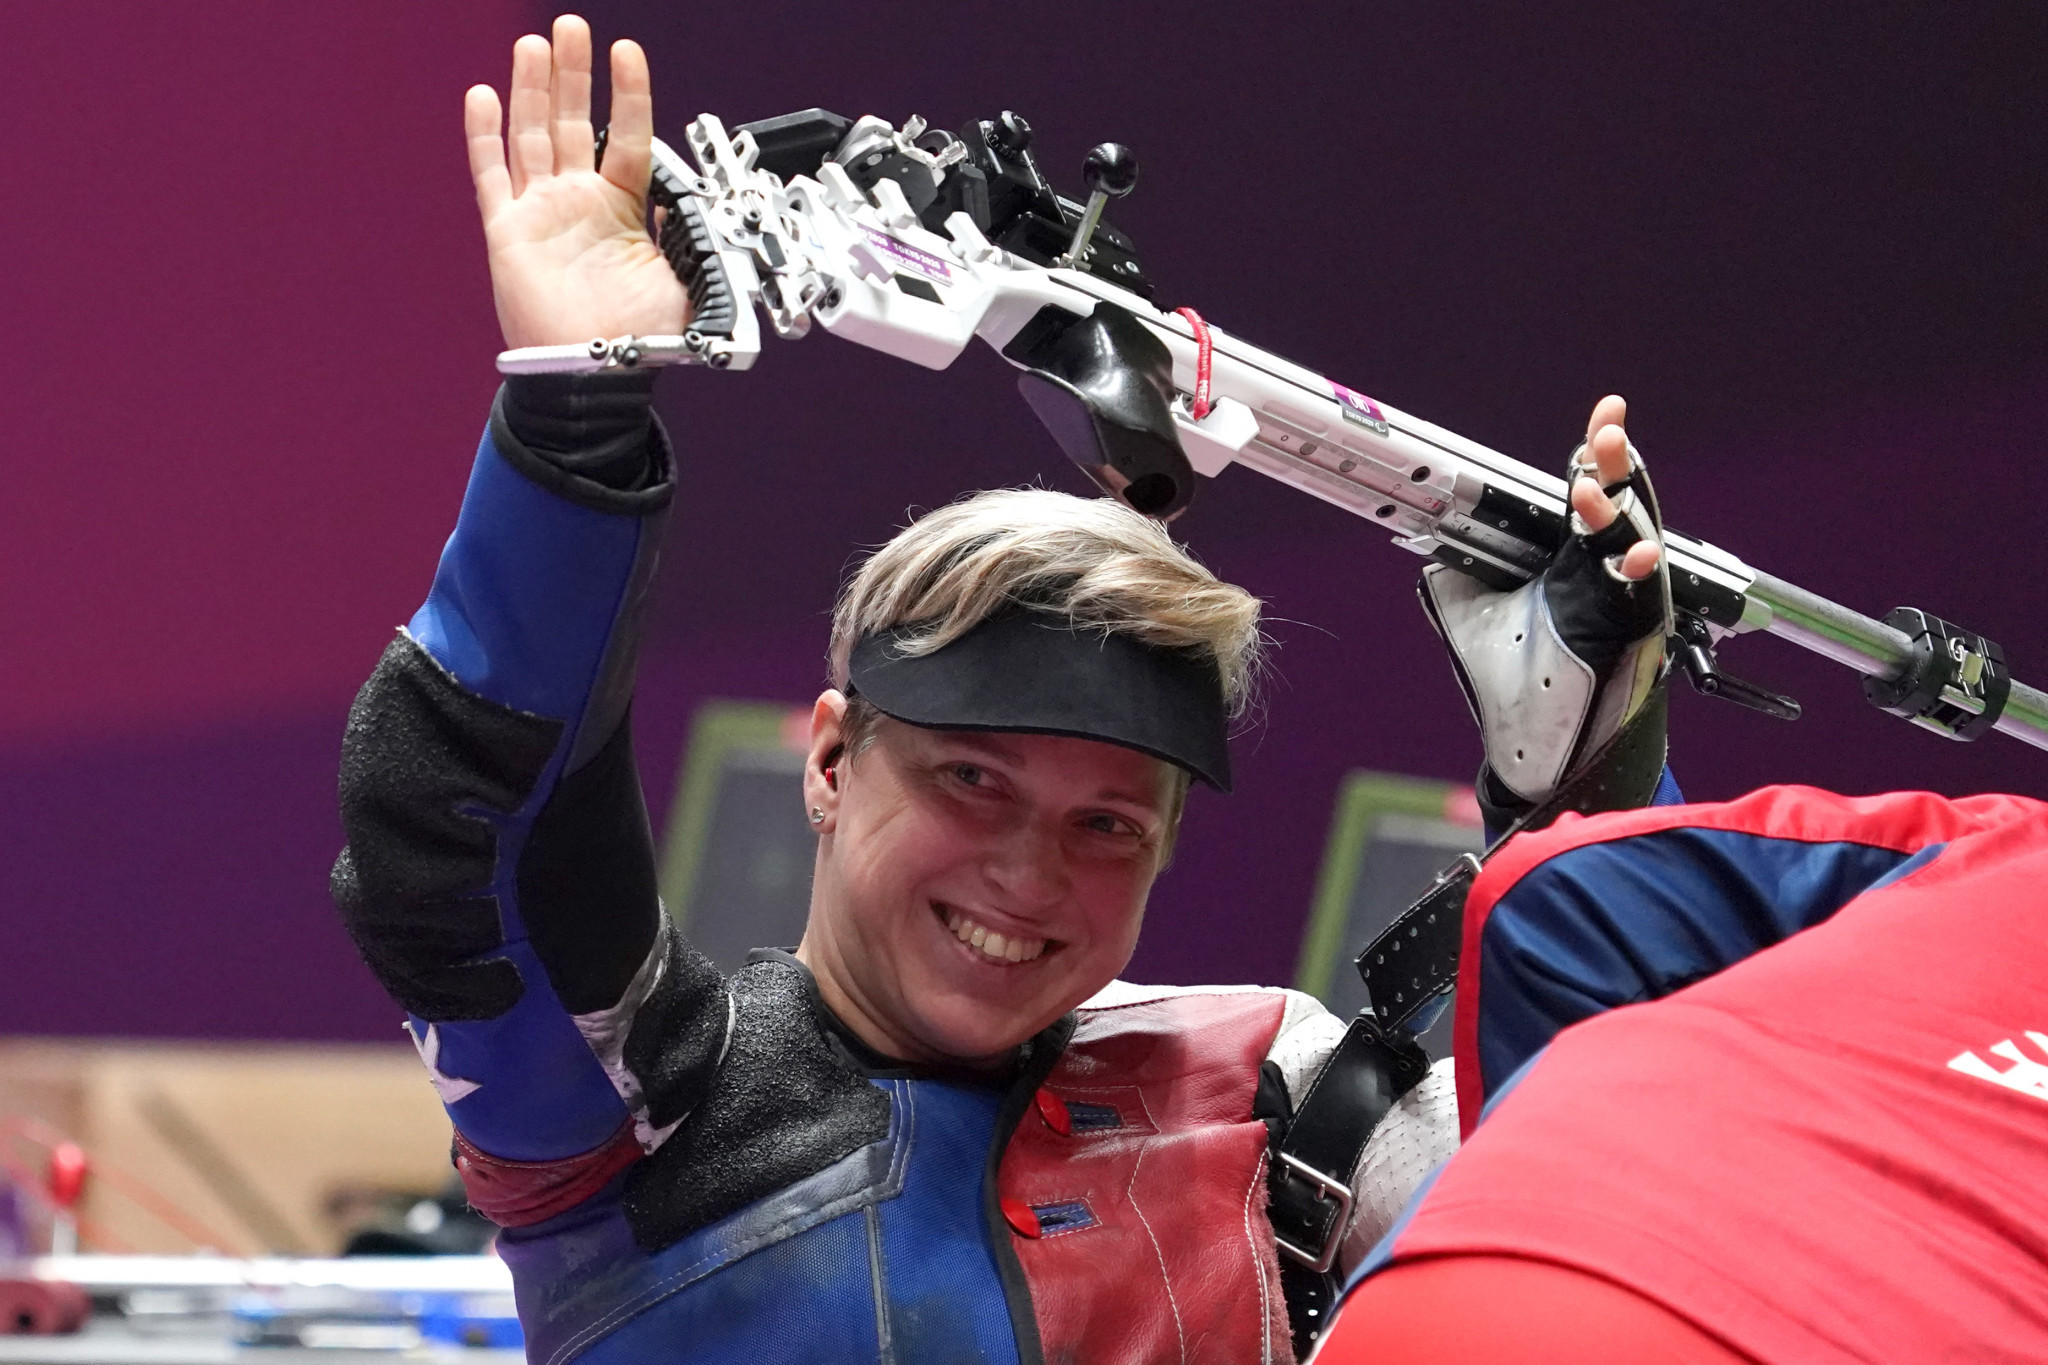 Vadovičová wins fourth Paralympic gold of career in final Tokyo 2020 shooting event